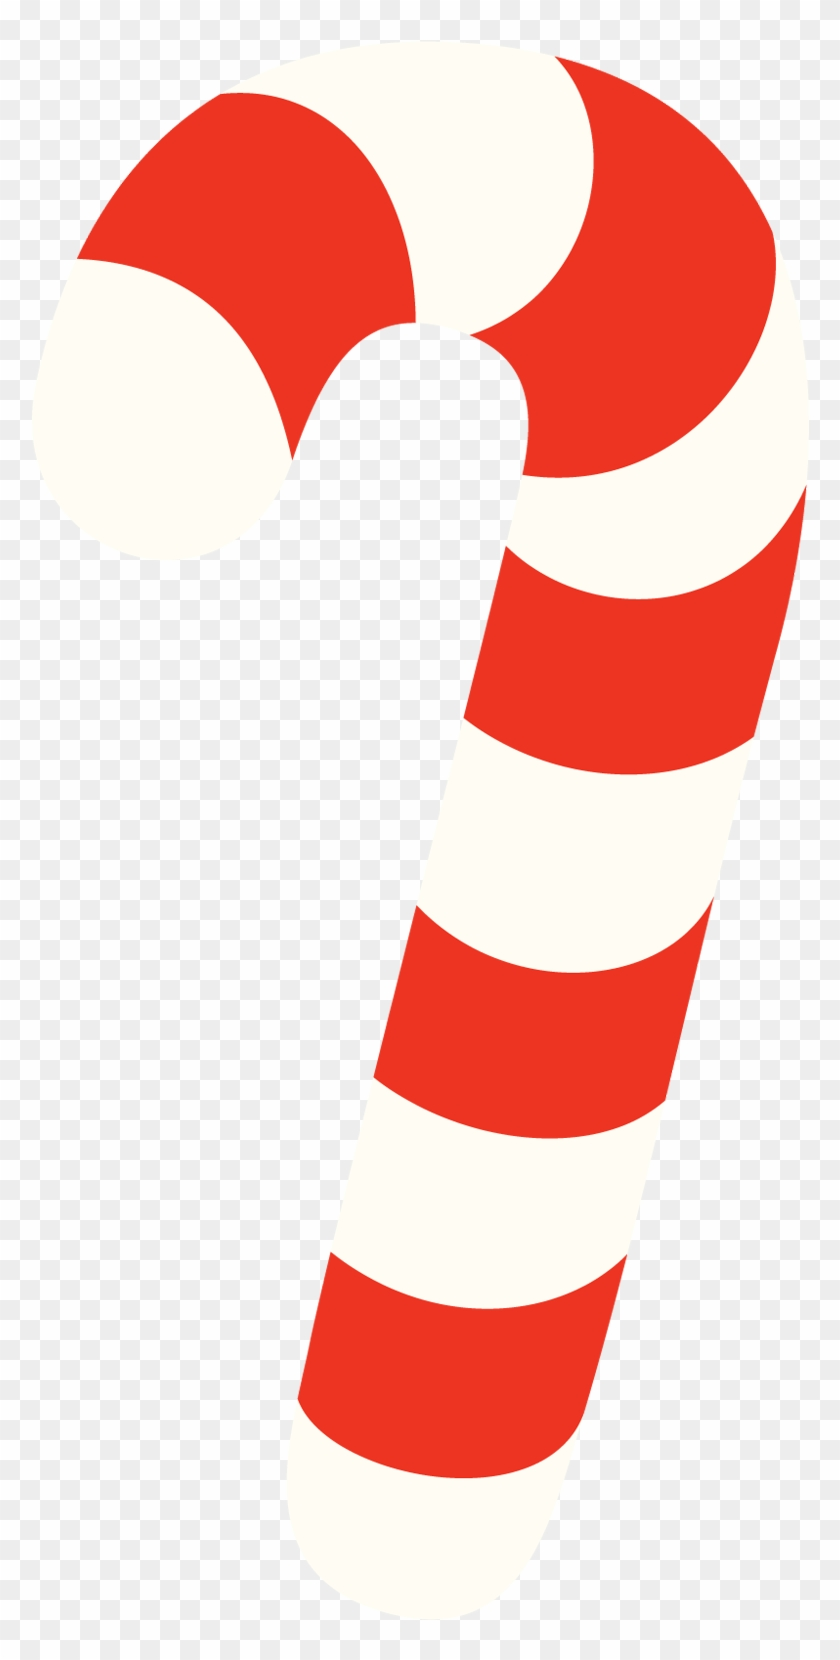 Candy Cane Free To Use Clip Art - Candy Cane Vector Png #34382